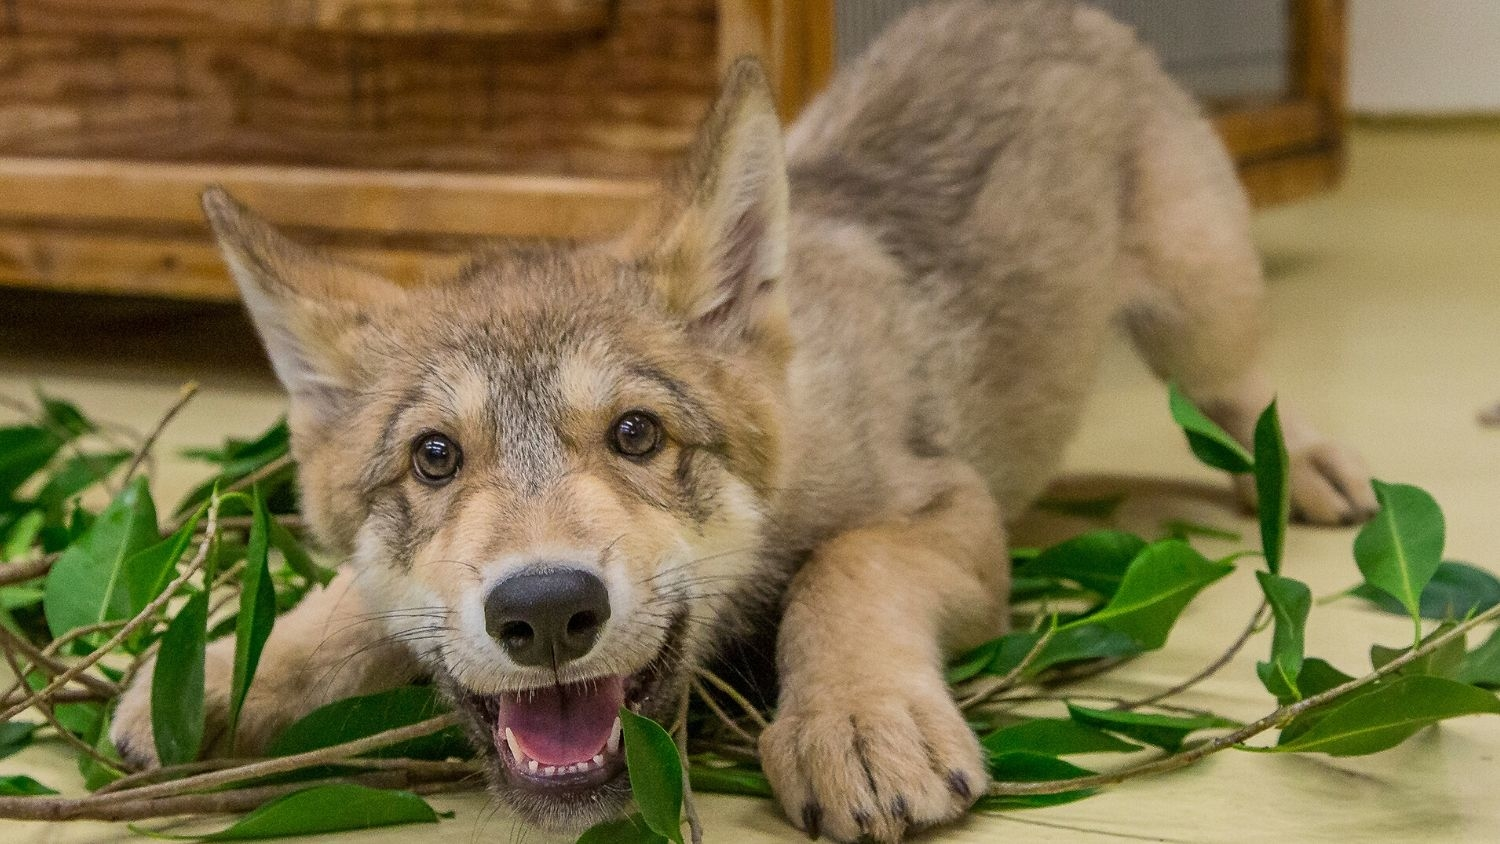 Shadow, a wolf at the San Diego Zoo, when he was a pup in 2014 - Positive YouTube Videos of Wolves Linked to Greater Tolerance - Forestry and Environmental Resources NC State University